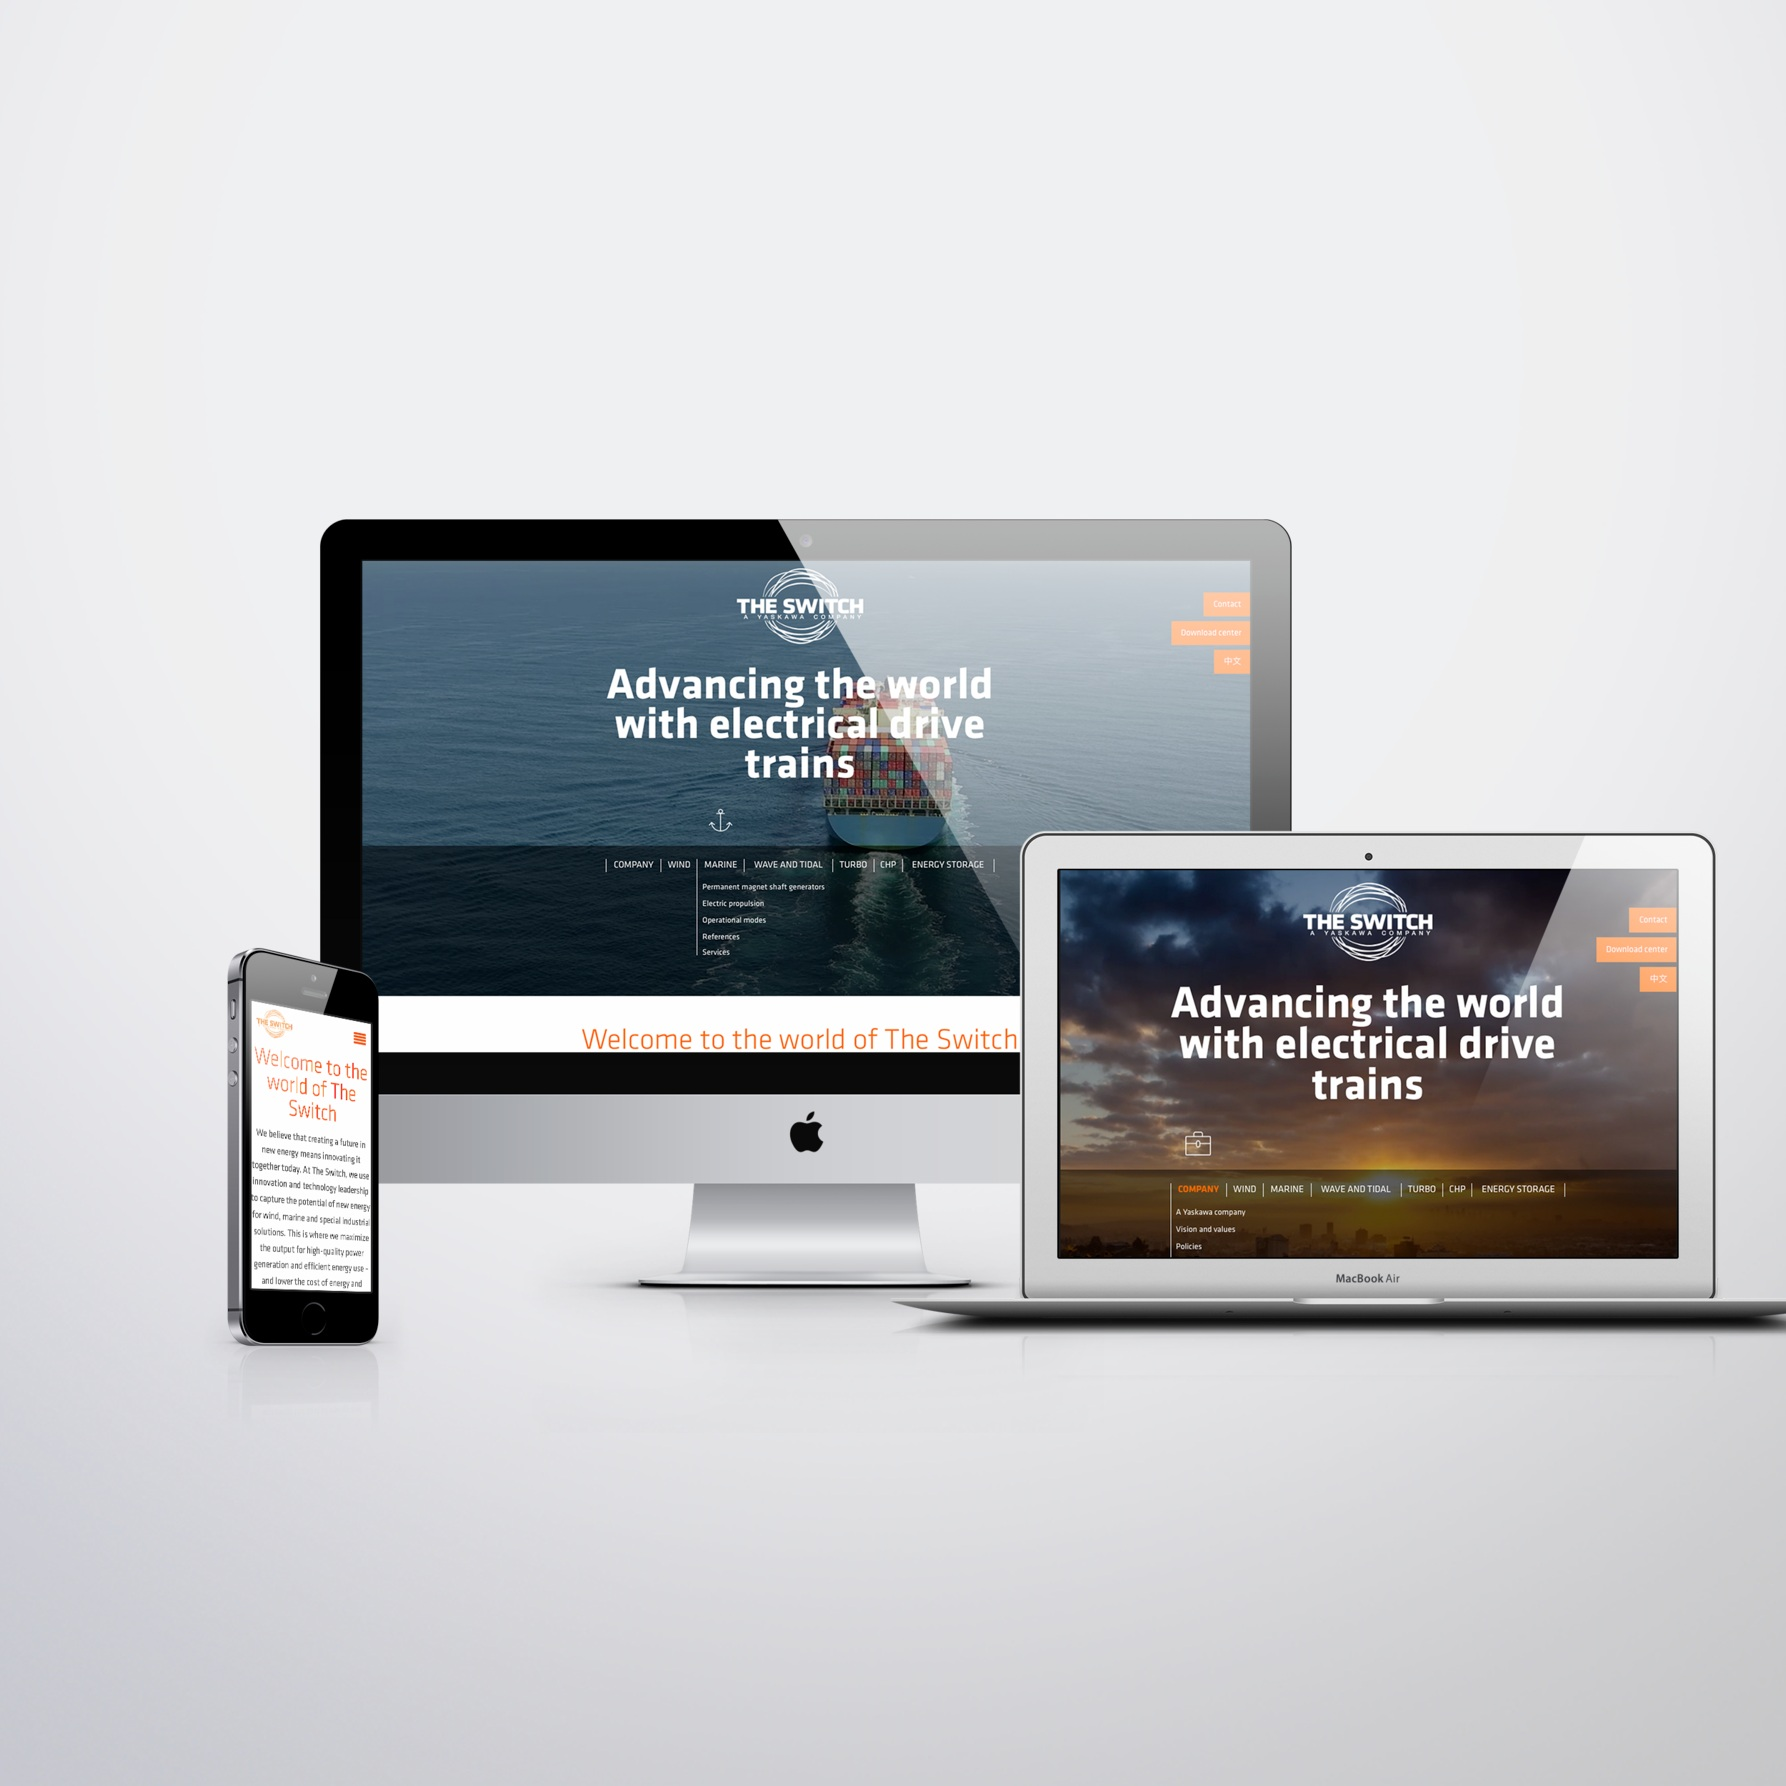 - CLIENTTHE SWITCHWHATVISUAL IDENTITY, BRANDING AND BRAND DEVELOPMENT, CO-IDEATIONWHOTHE POINT